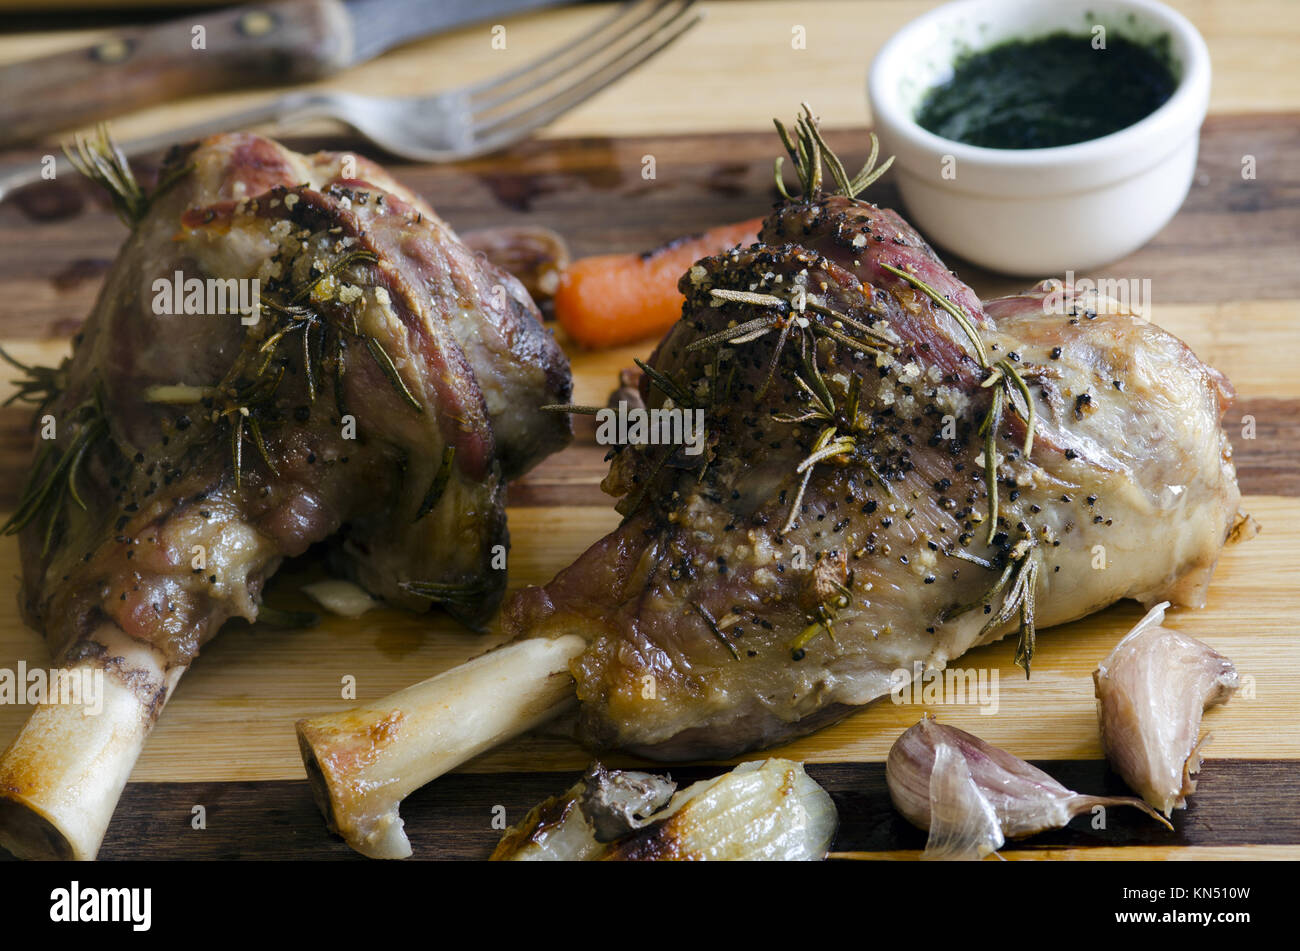 Roast leg of lamb with rosemary and garlic. - Stock Image